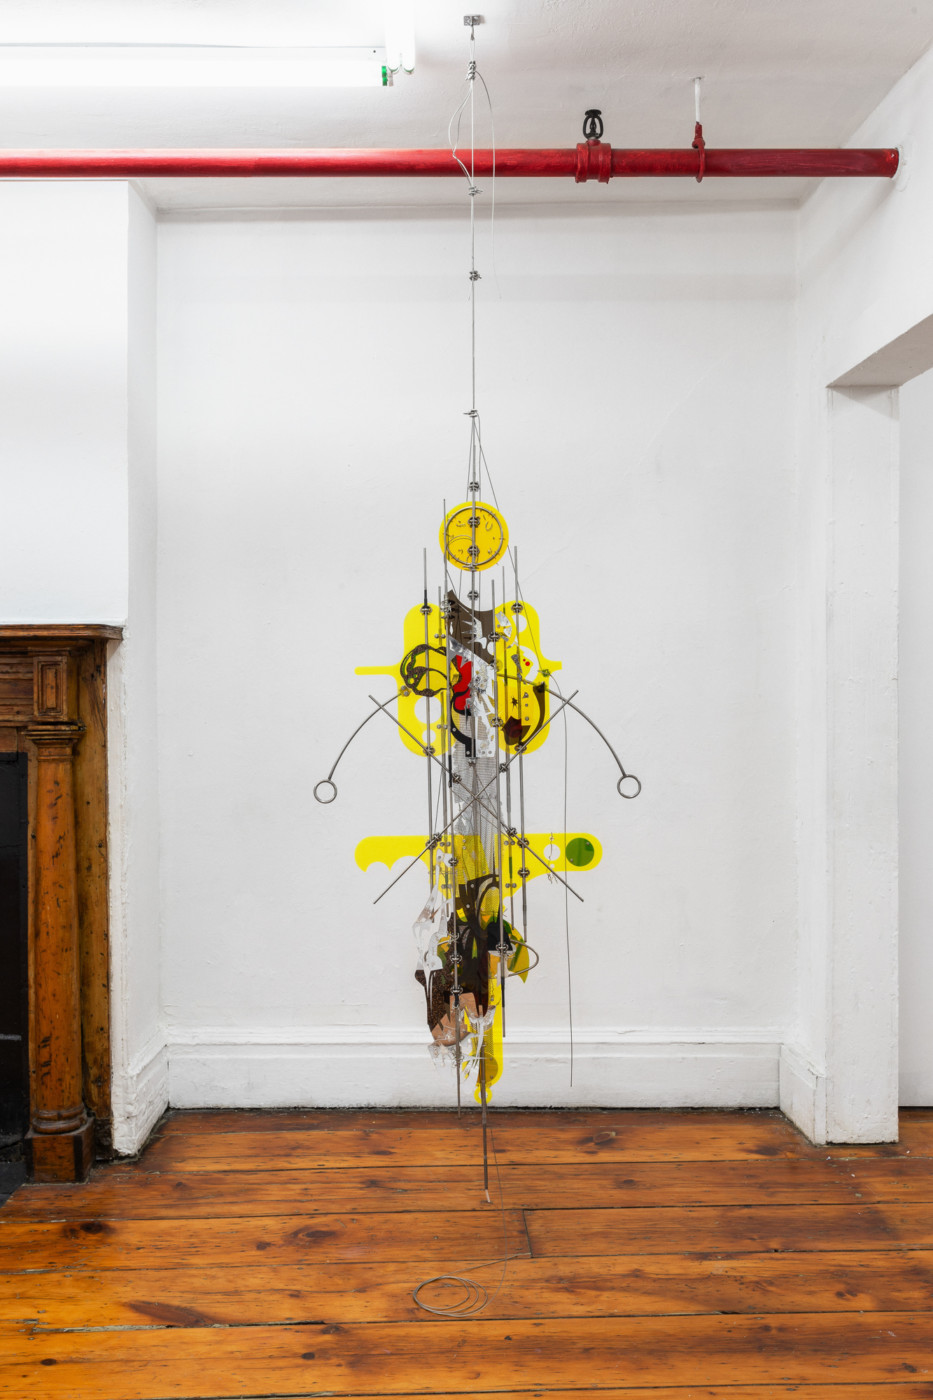 VALERIE KEANE  Existence Machine (Desire Pact) , 2019 Acrylic, stainless steel 160 x 58,4 cm / 63 x 27 in - High Art Gallery Paris